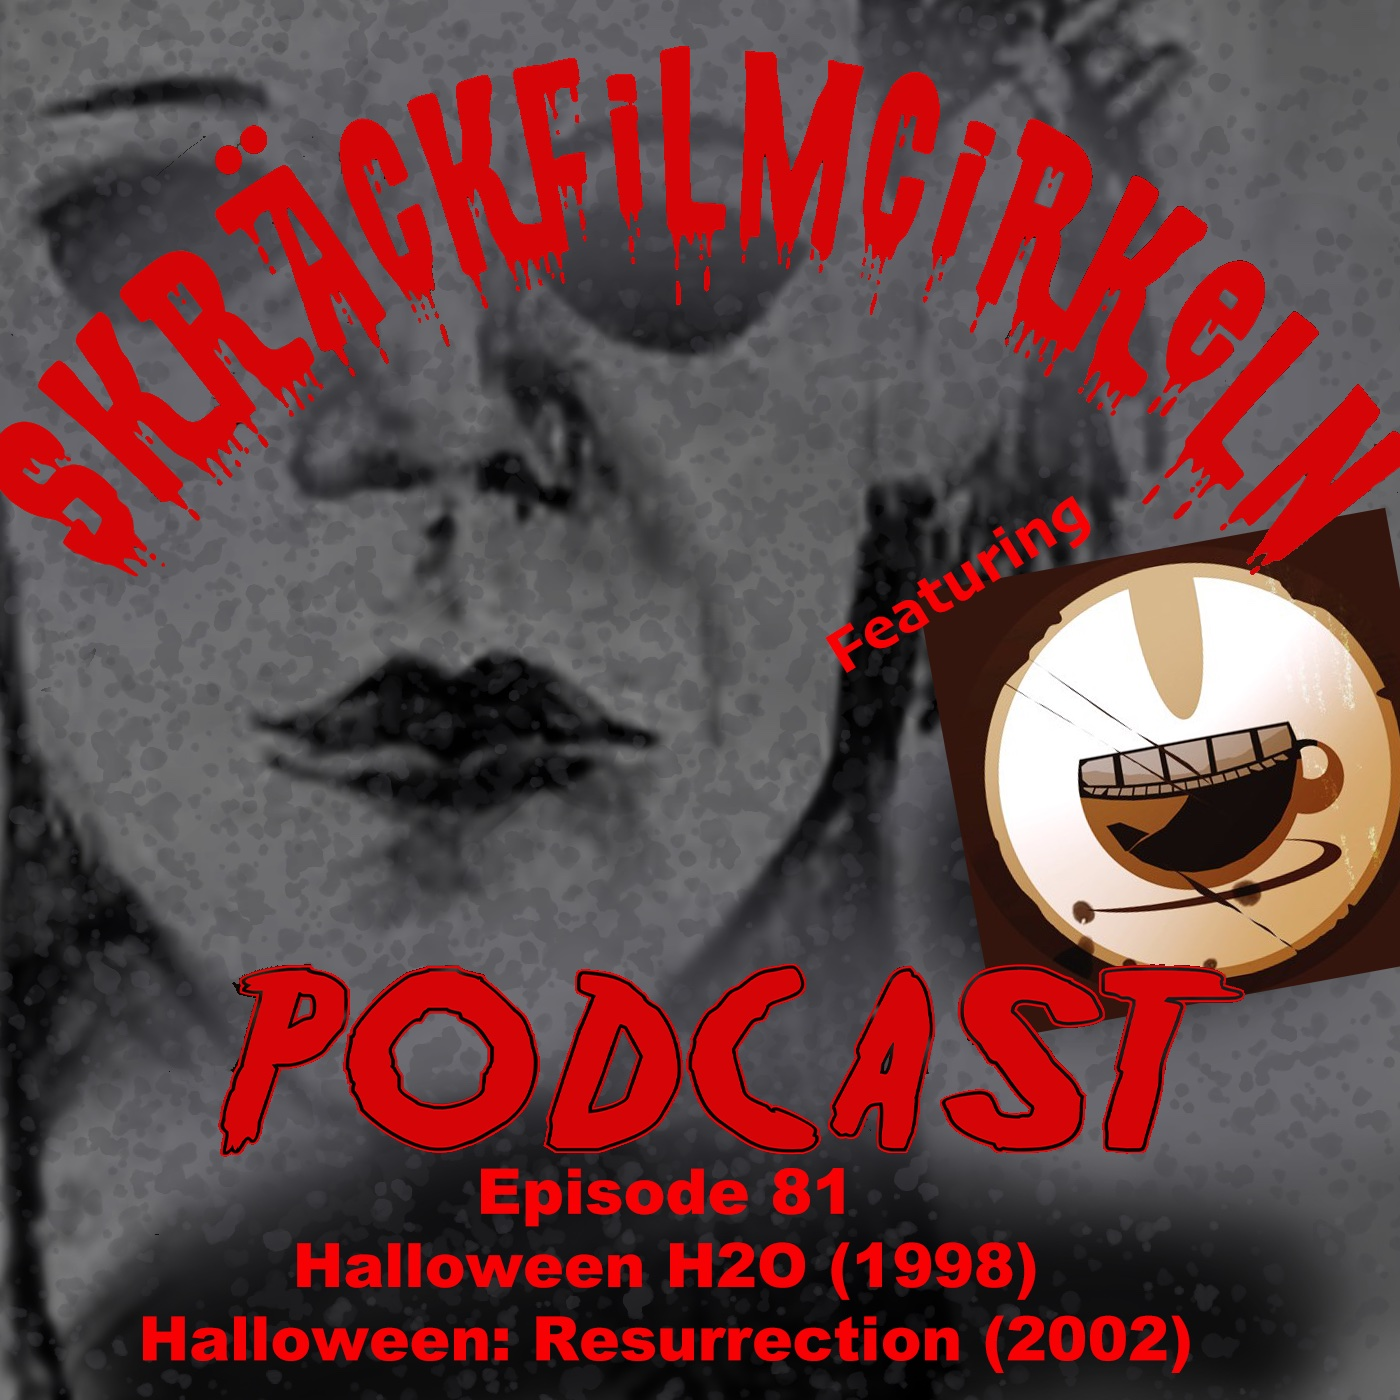 Episode 81 - Halloween H2O & Ressurection Double Bill